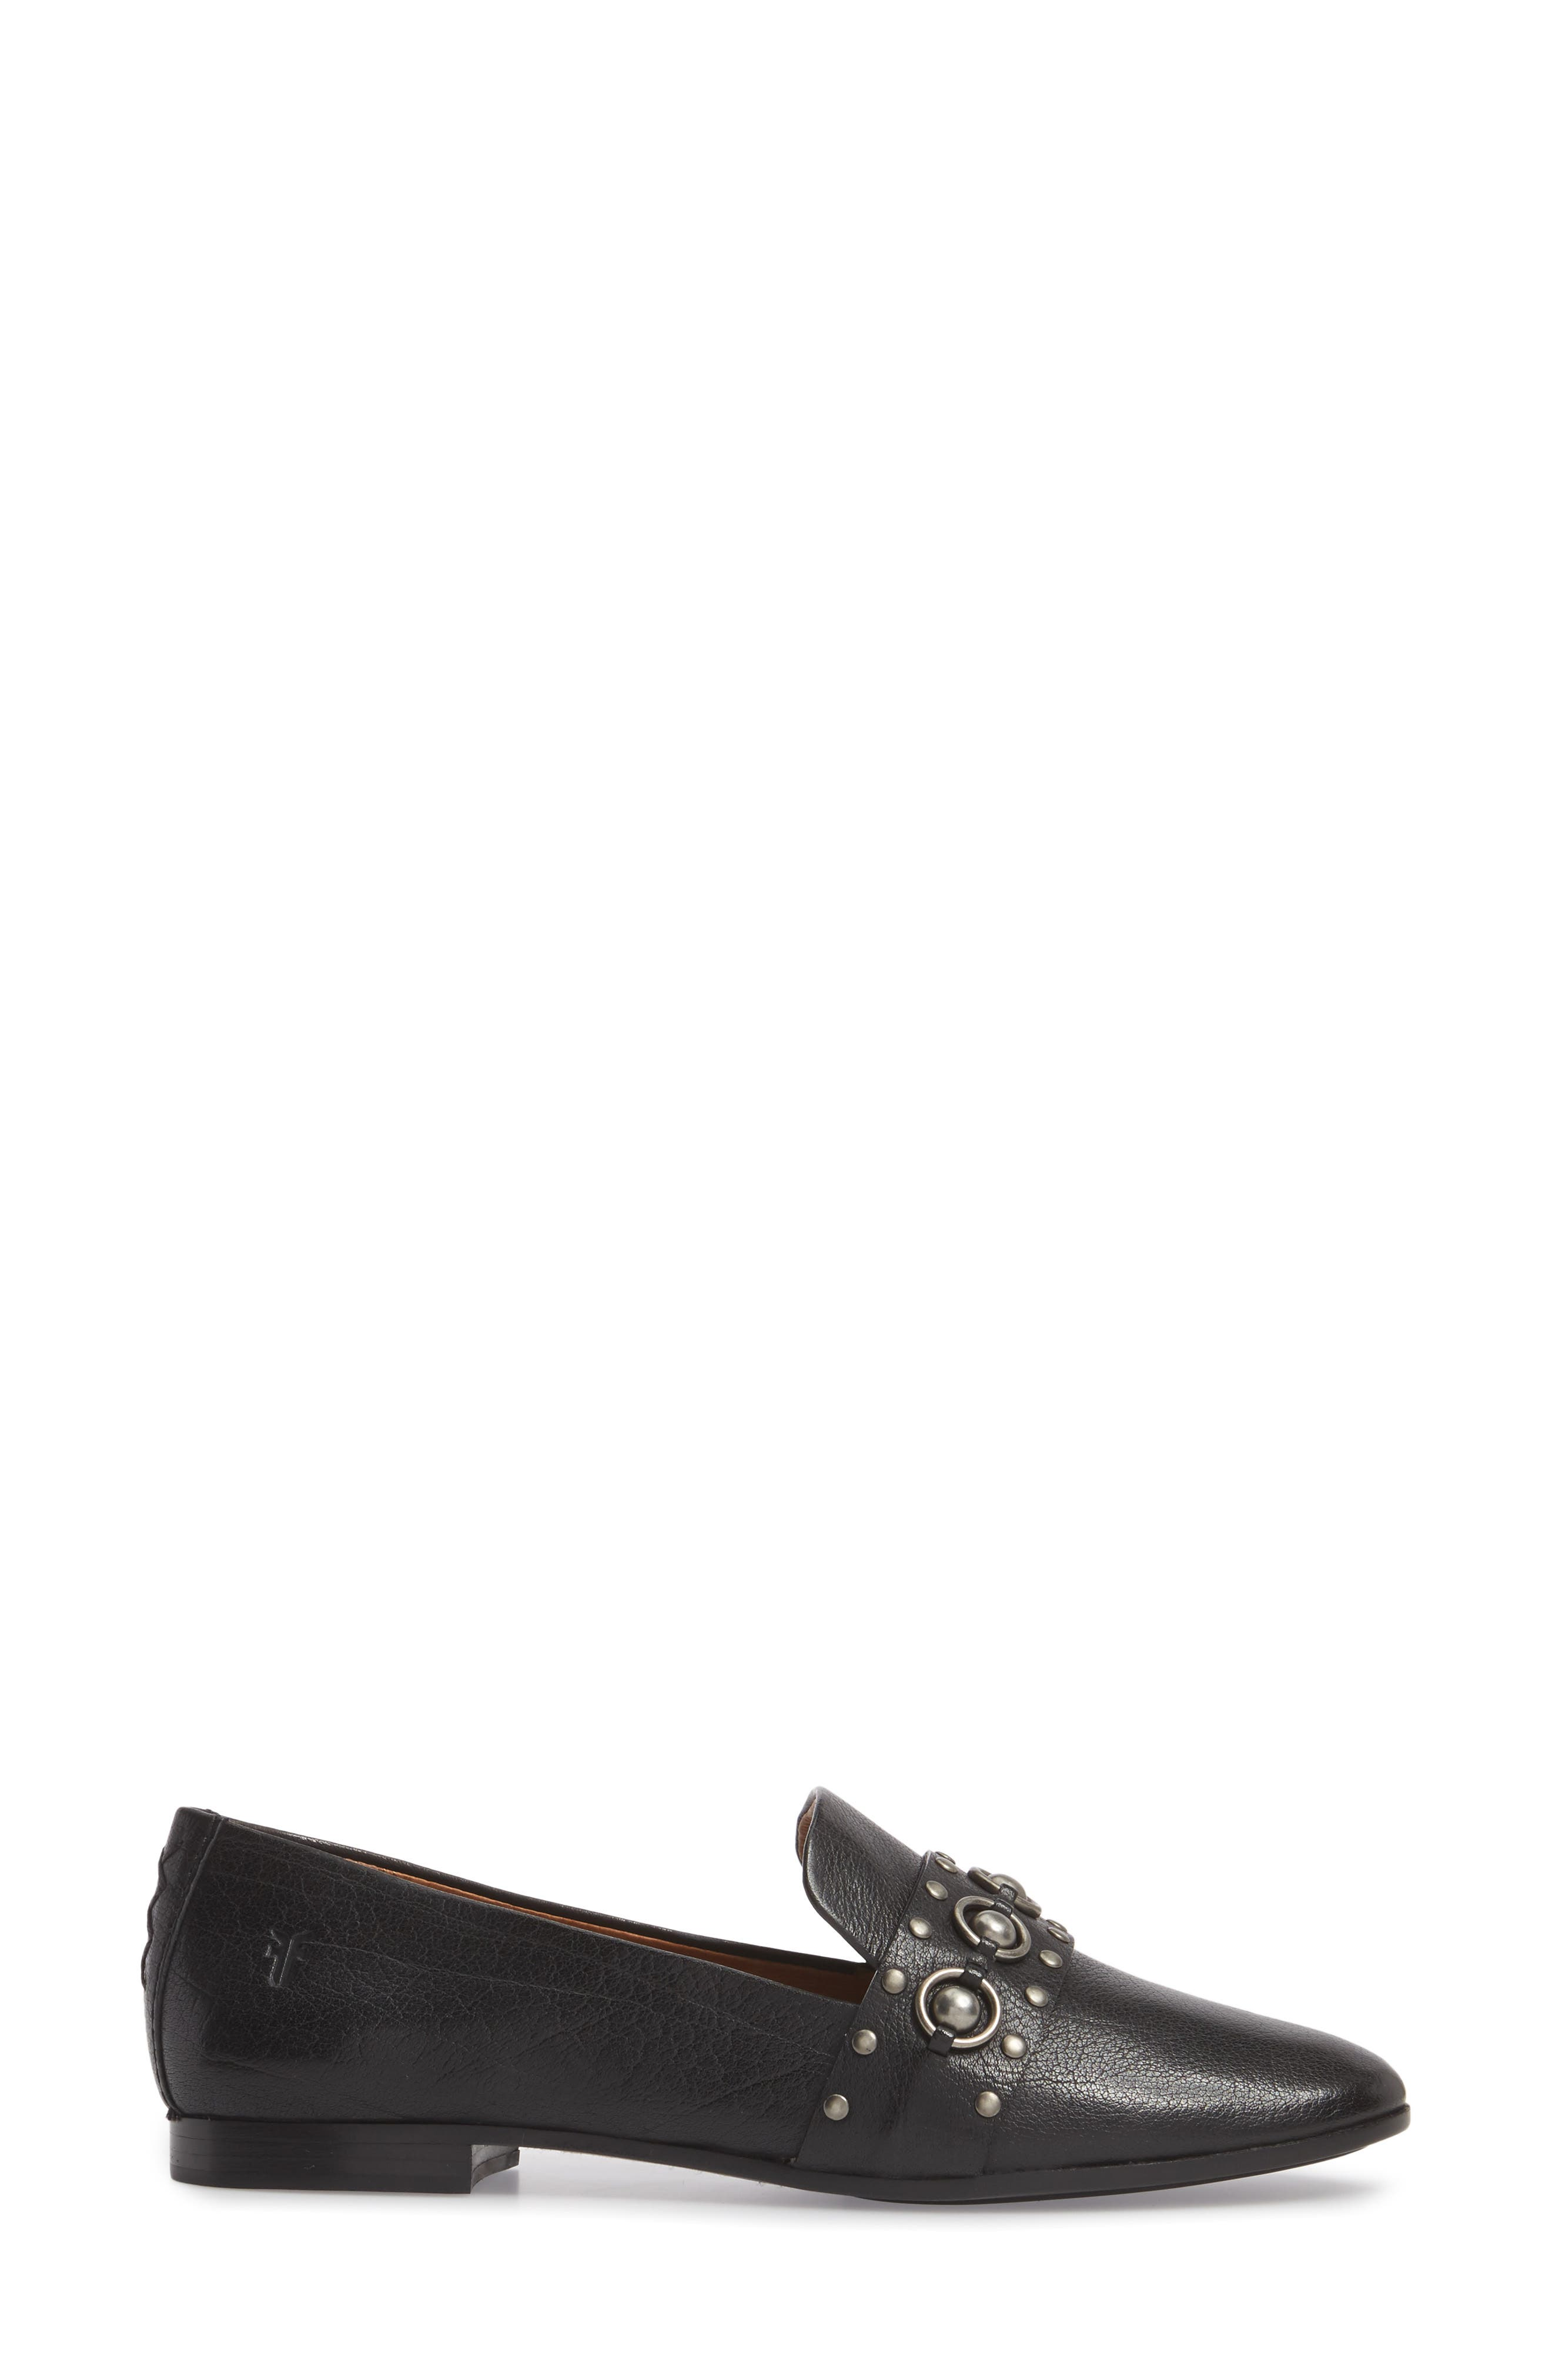 Terri Stud Loafer,                             Alternate thumbnail 3, color,                             Black Leather